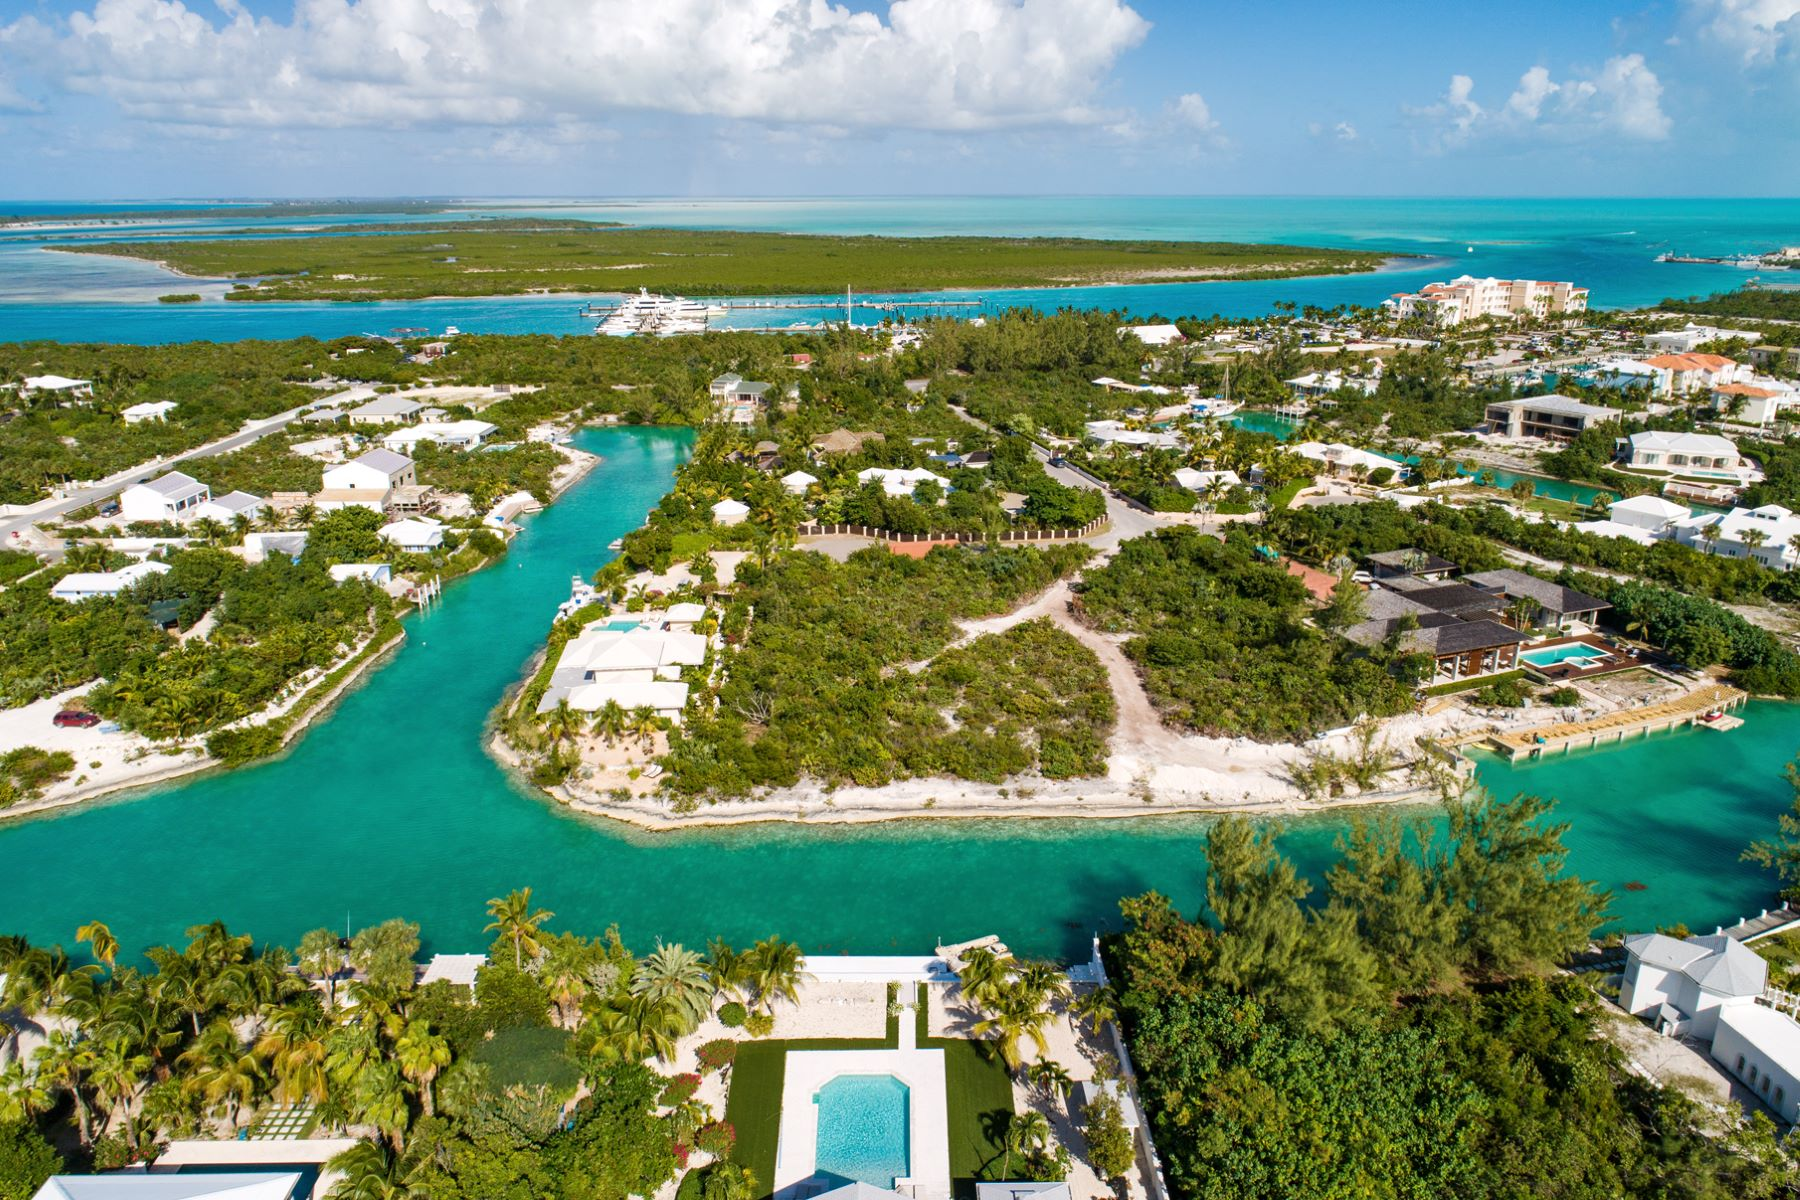 Land for Sale at Vacant Land - Leeward Leeward, Providenciales Turks And Caicos Islands